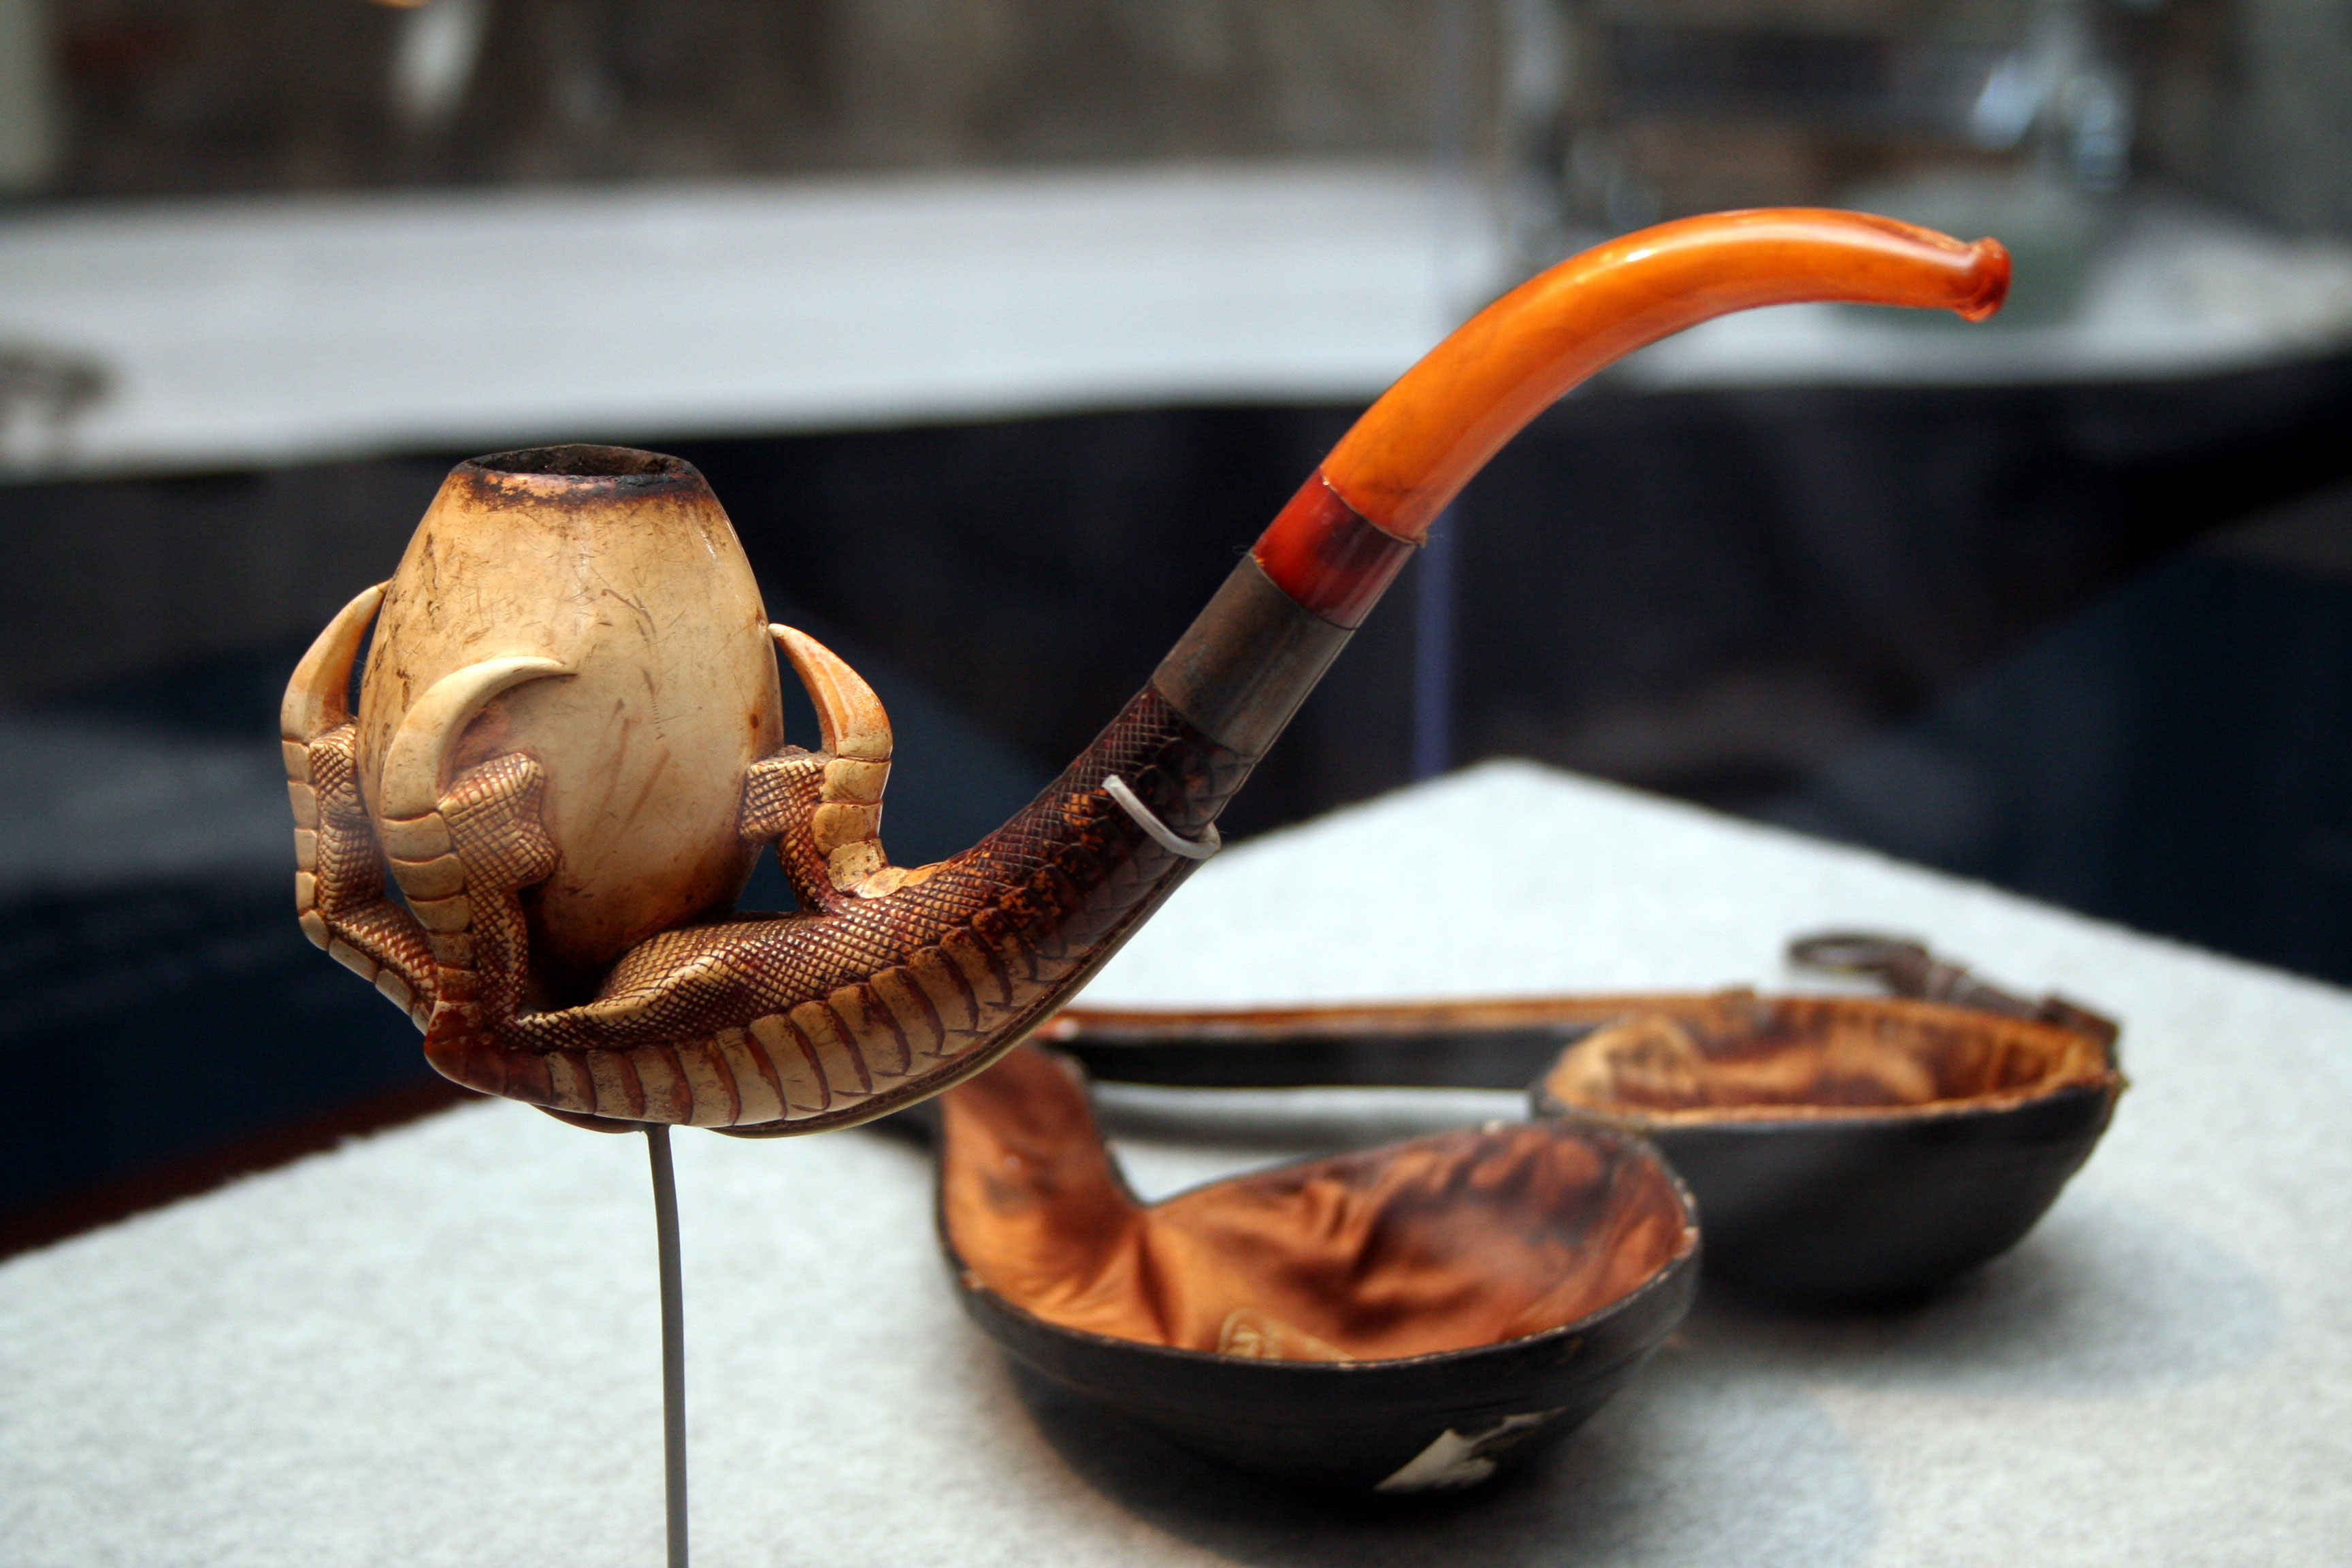 http://pipesmagazine.com/wp-content/2011-articles/jefferson-davis/jefferson-davis-meerschaum-pipe.jpg